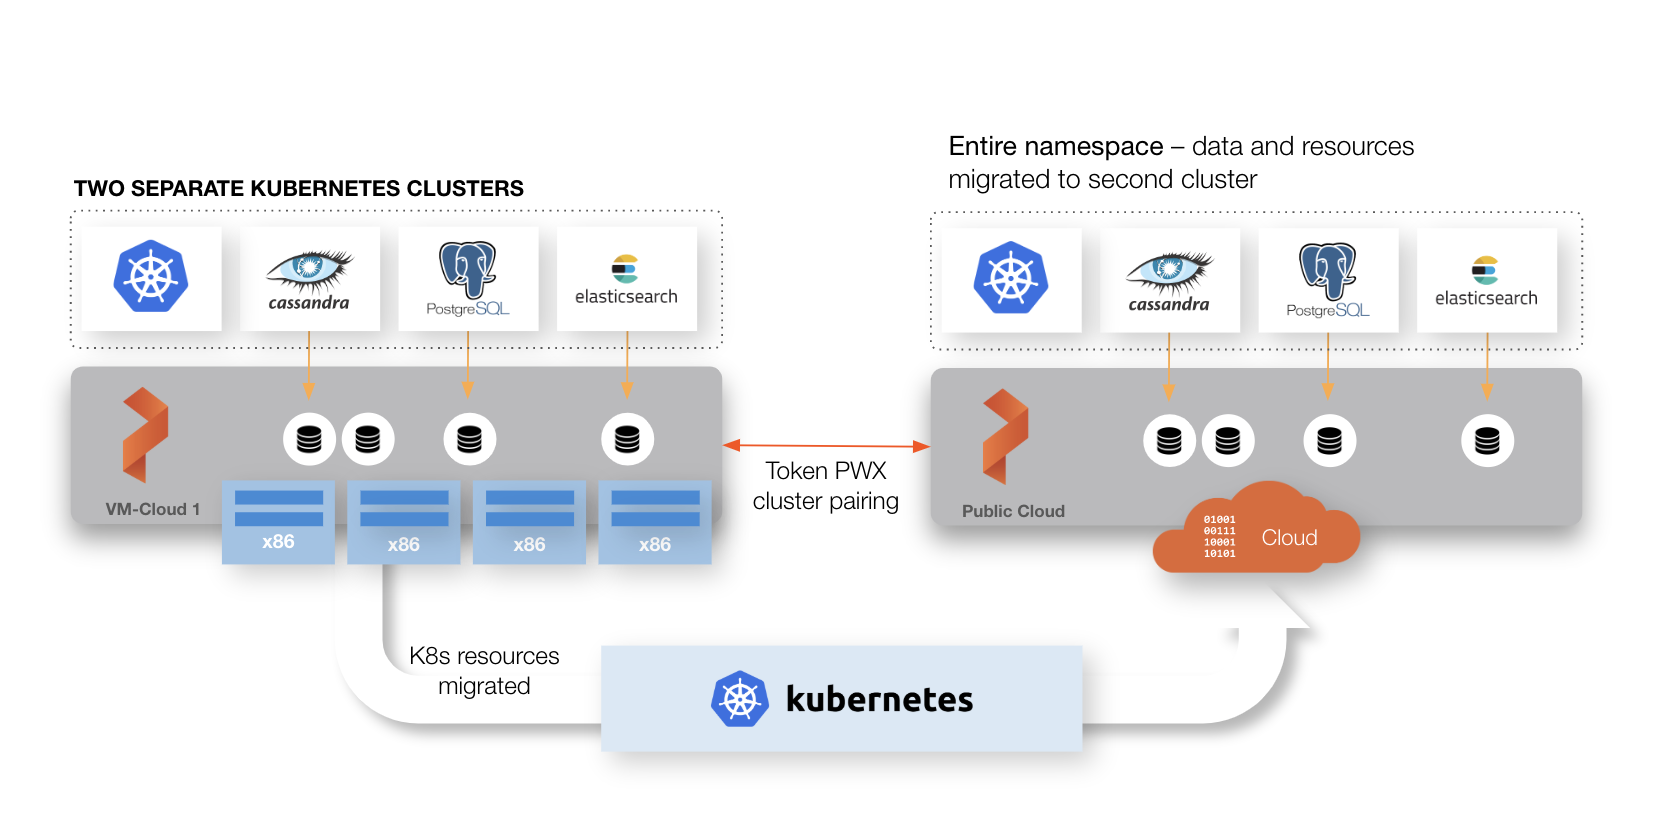 Asynchronous DR of a wide-area network (WAN) using multiple Kubernetes clusters with multiple Portworx clusters